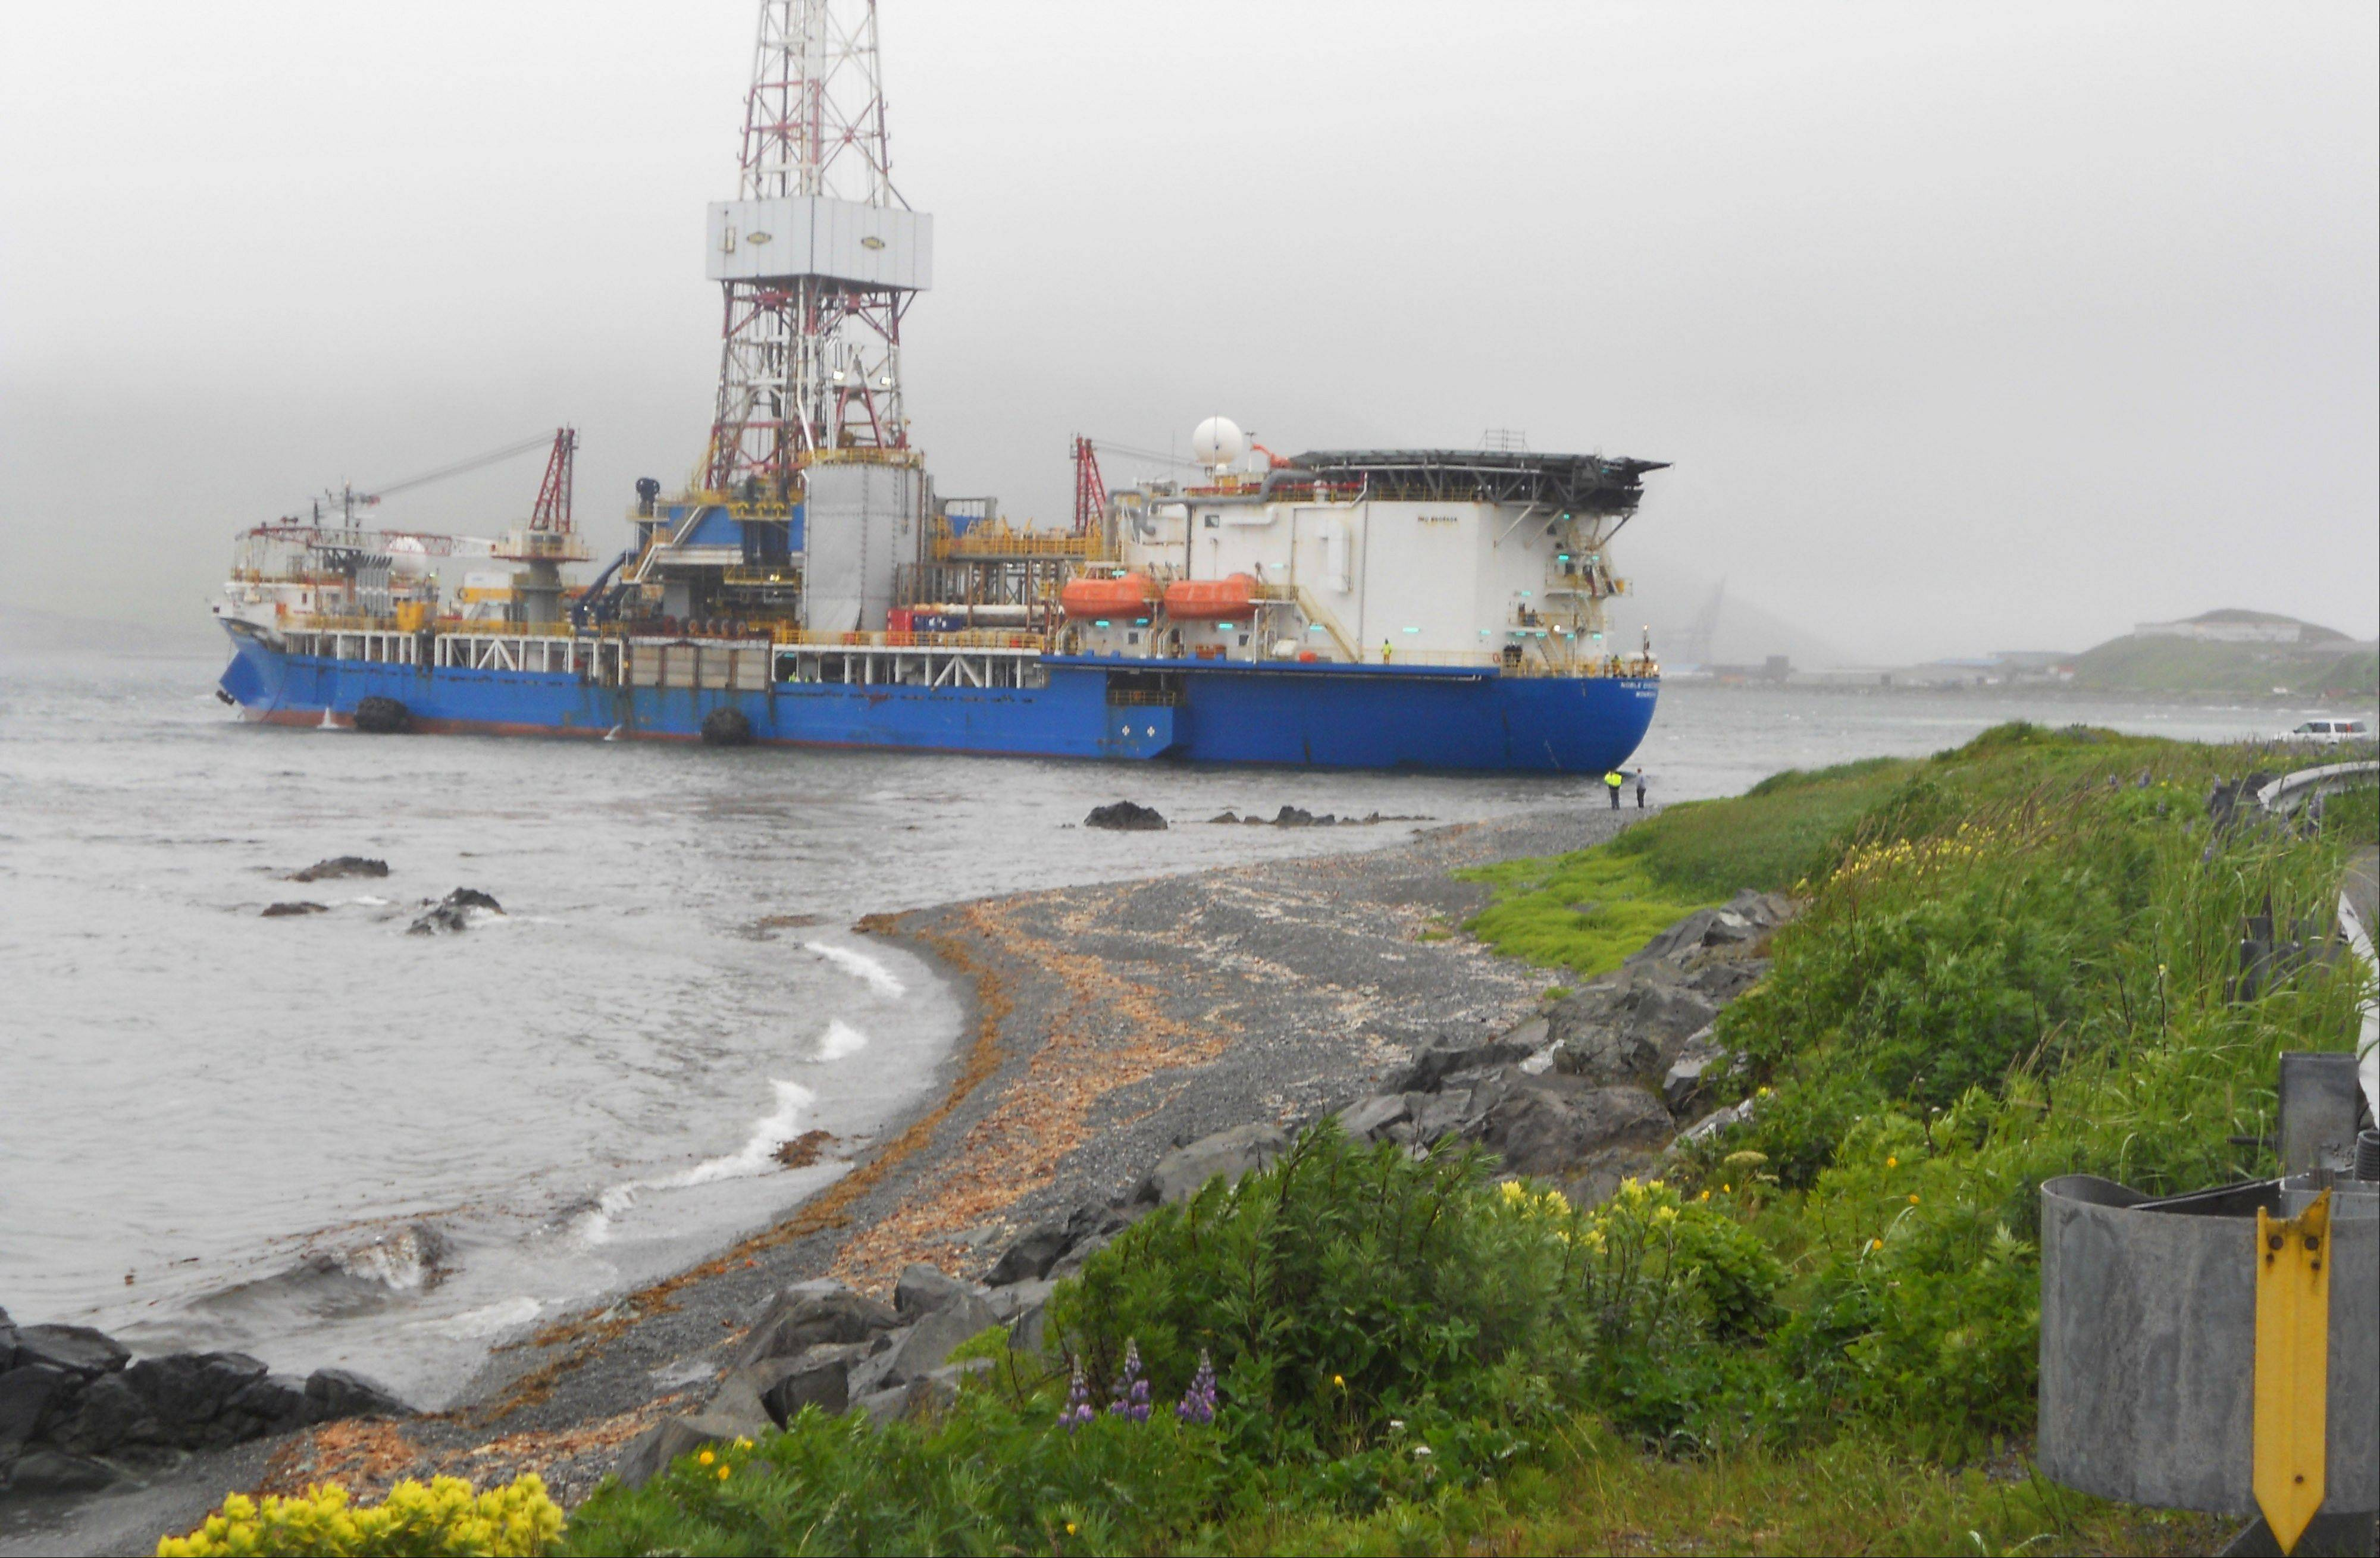 Associated Press/July 14, 2012, courtesy of Capt. Kristjan B. Laxfoss A Shell drilling ship drifts toward shore near Dutch Harbor on Unalaska Island, Alaska. The Coast Guard says an inspection of the Shell drilling ship that lost its mooring shows no signs of damage or grounding.